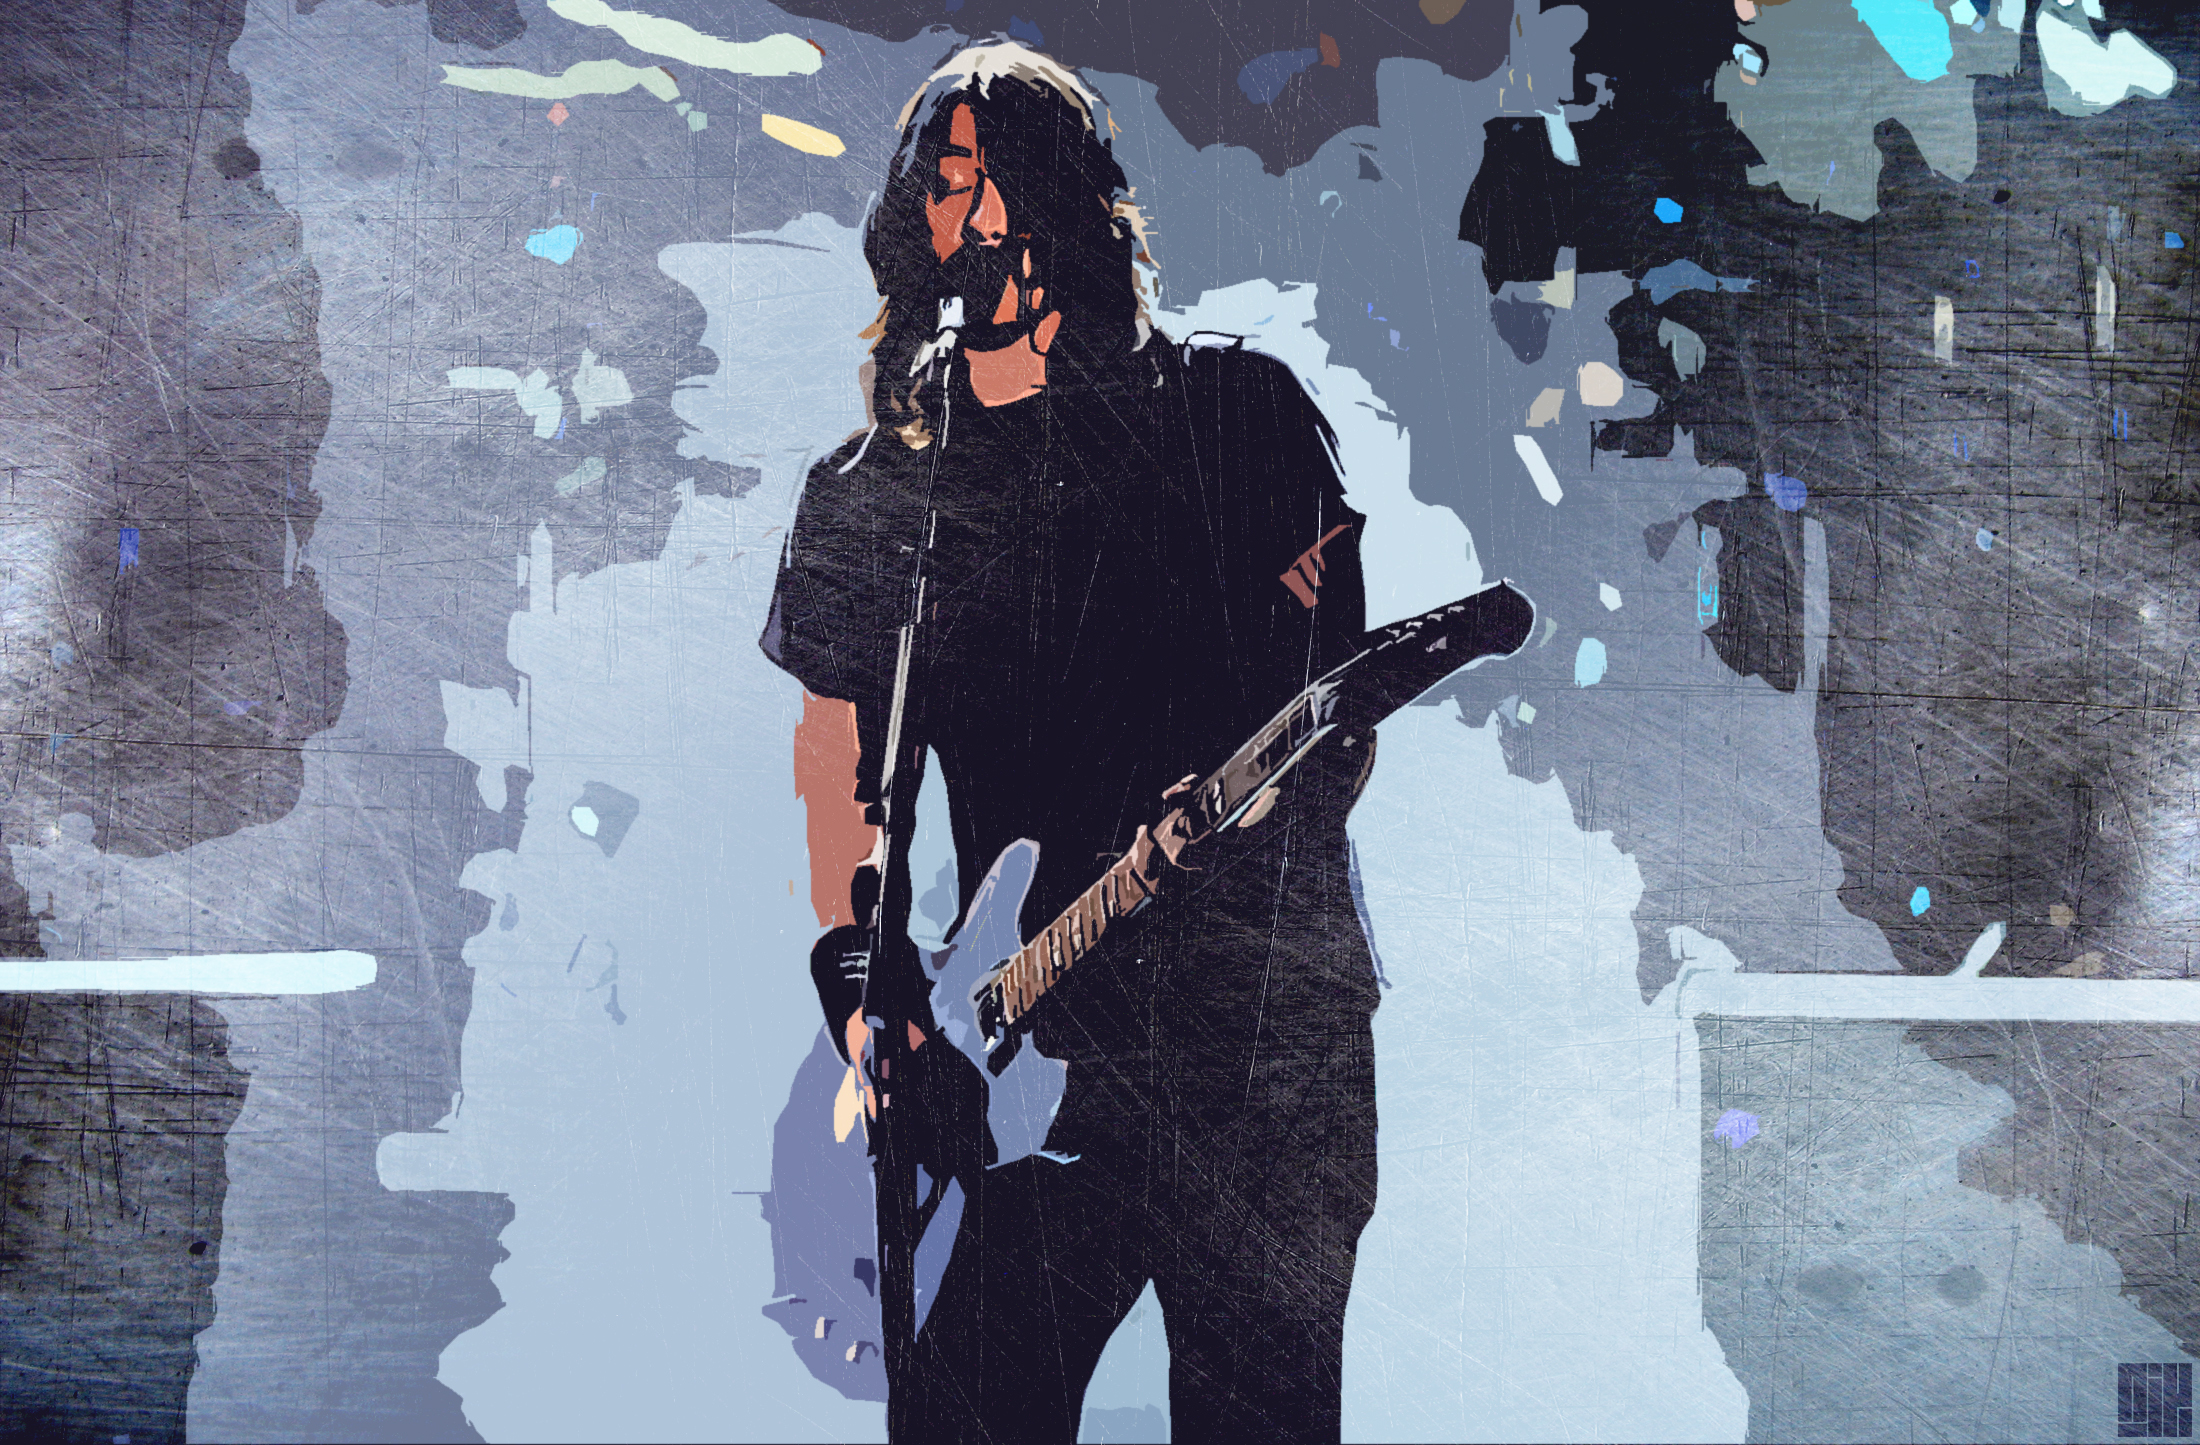 Dave Grohl Drums Wallpaper Dave Grohl Wallpaper by